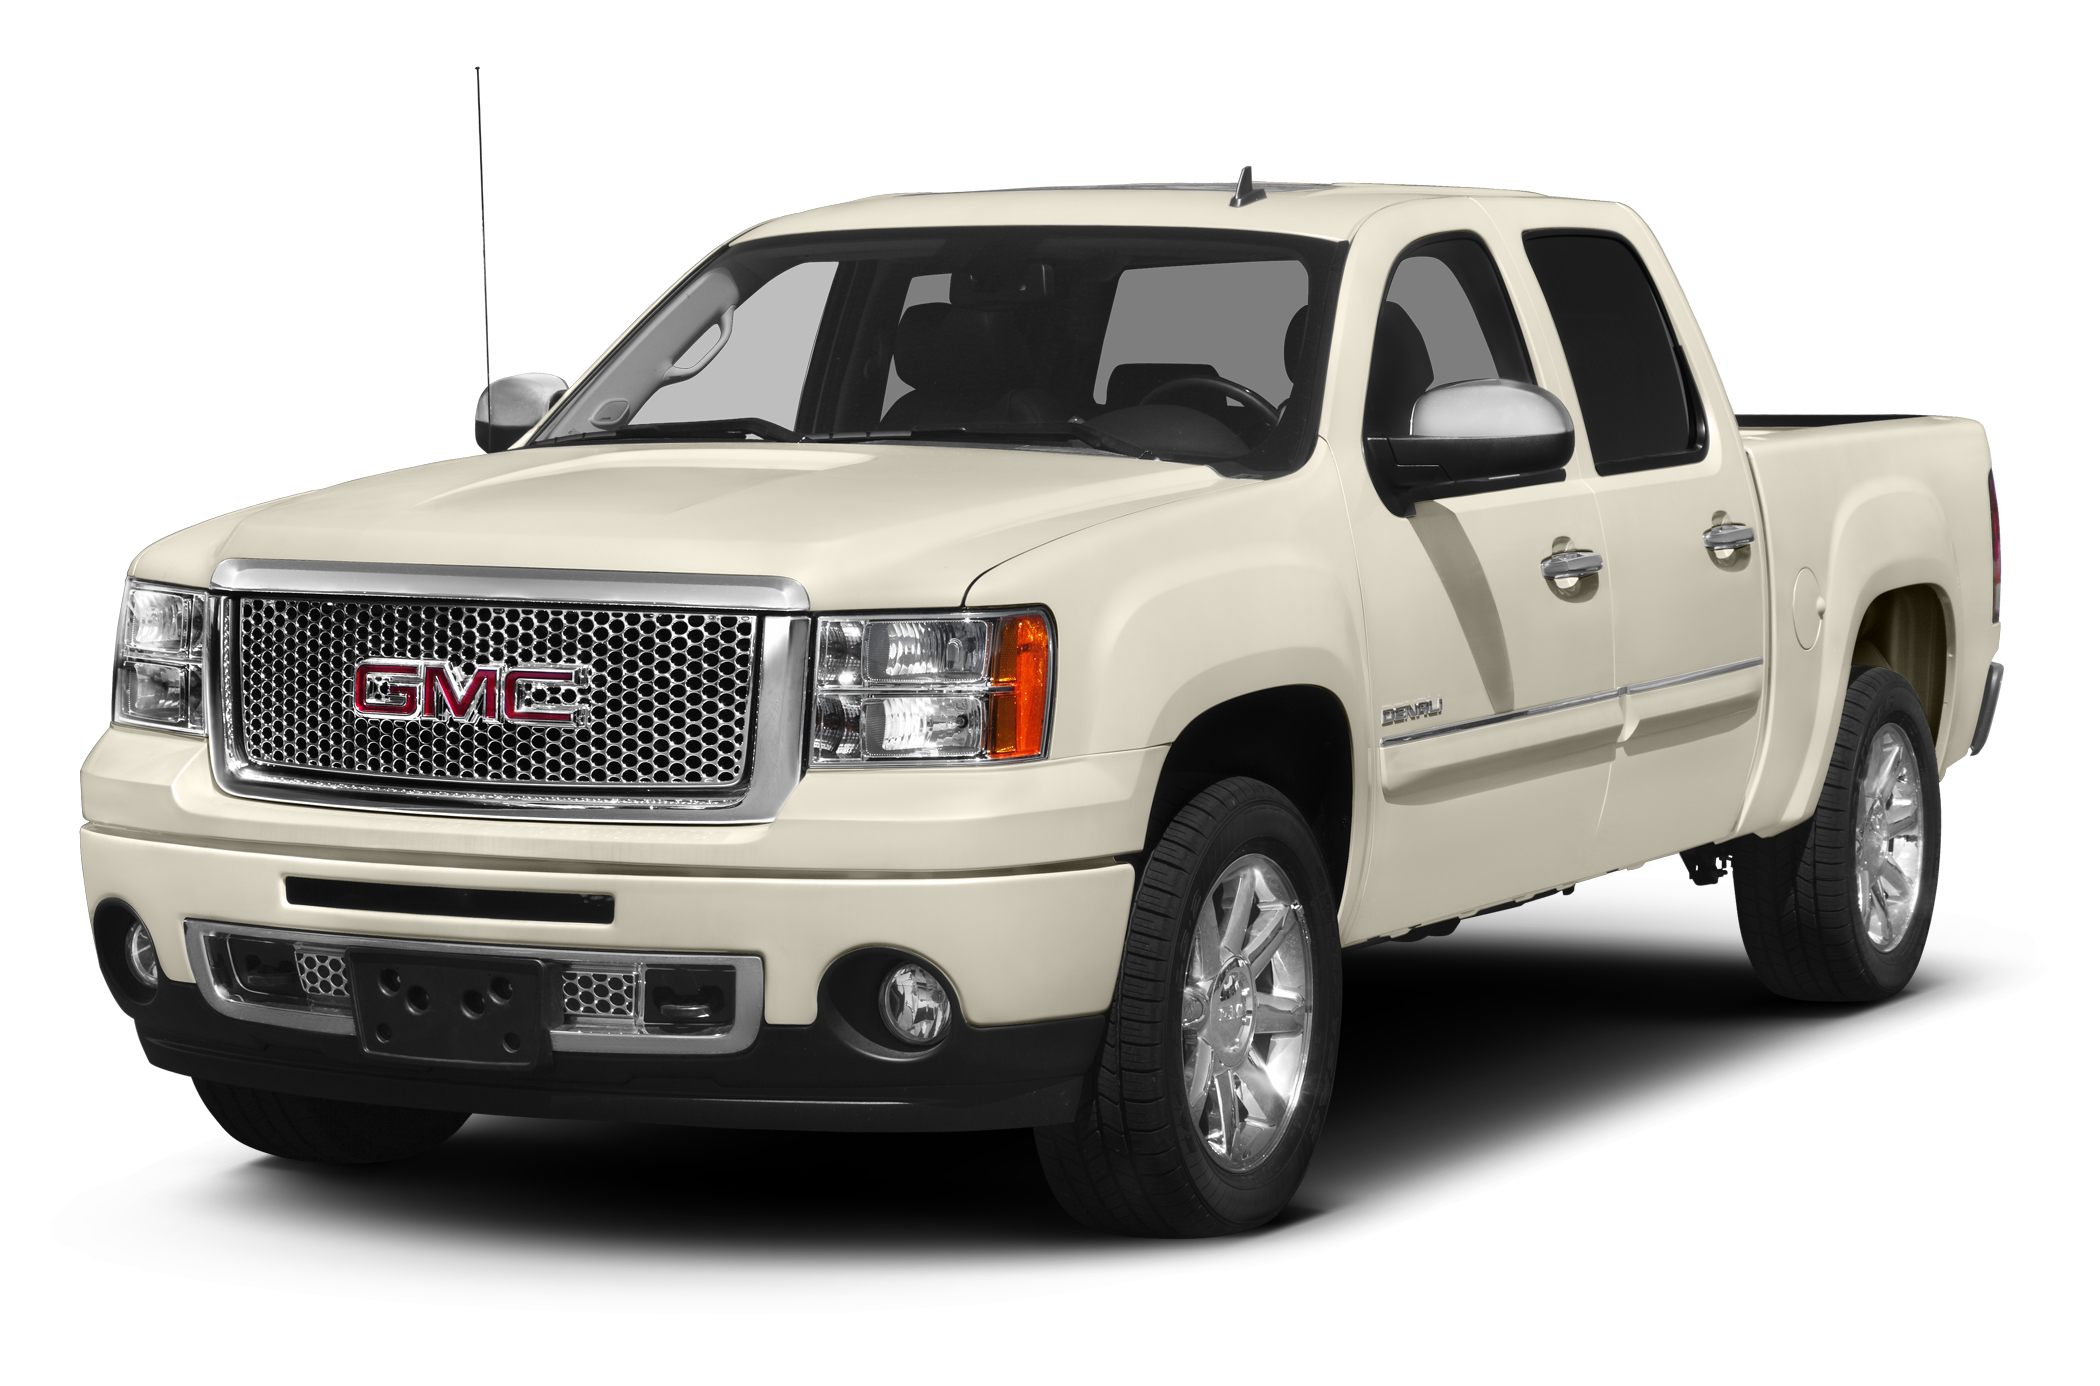 2013 GMC Sierra 1500 Denali Crew Cab Pickup for sale in Broken Arrow for $37,981 with 54,310 miles.